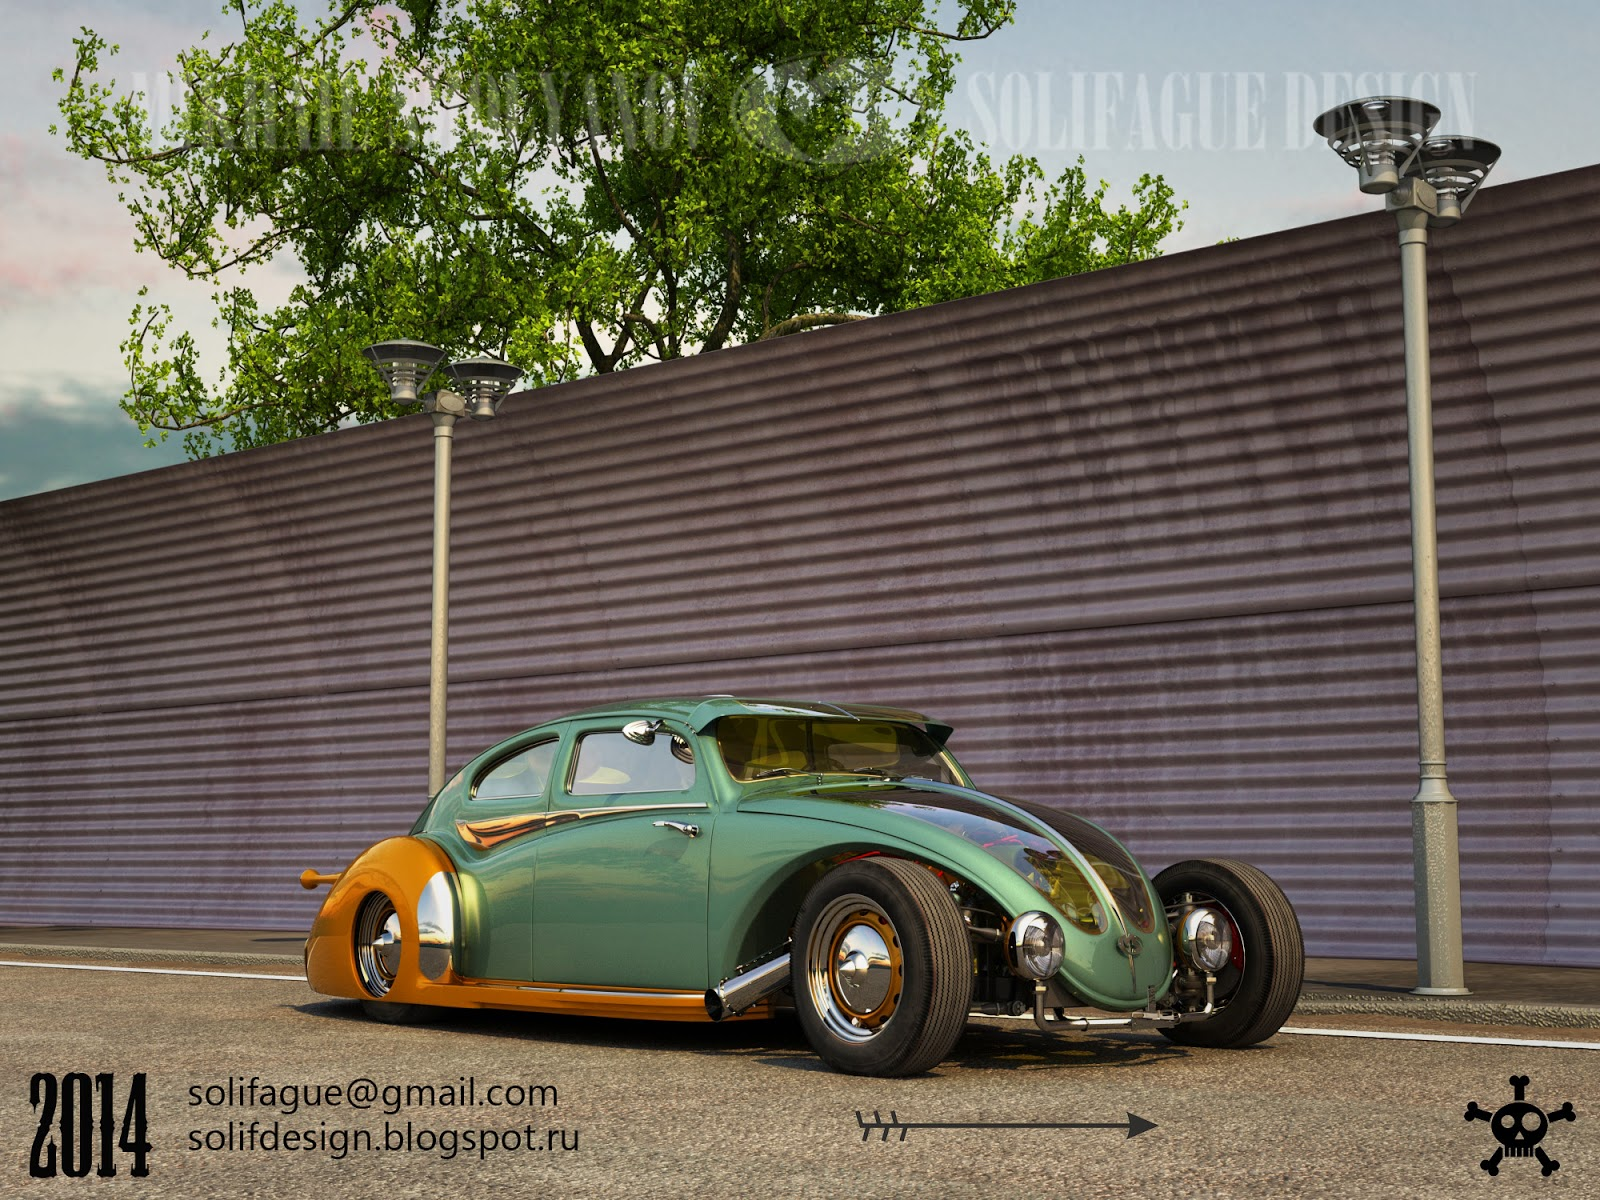 This Volkswagen Beetle Hotrod Rendering Should Become Real